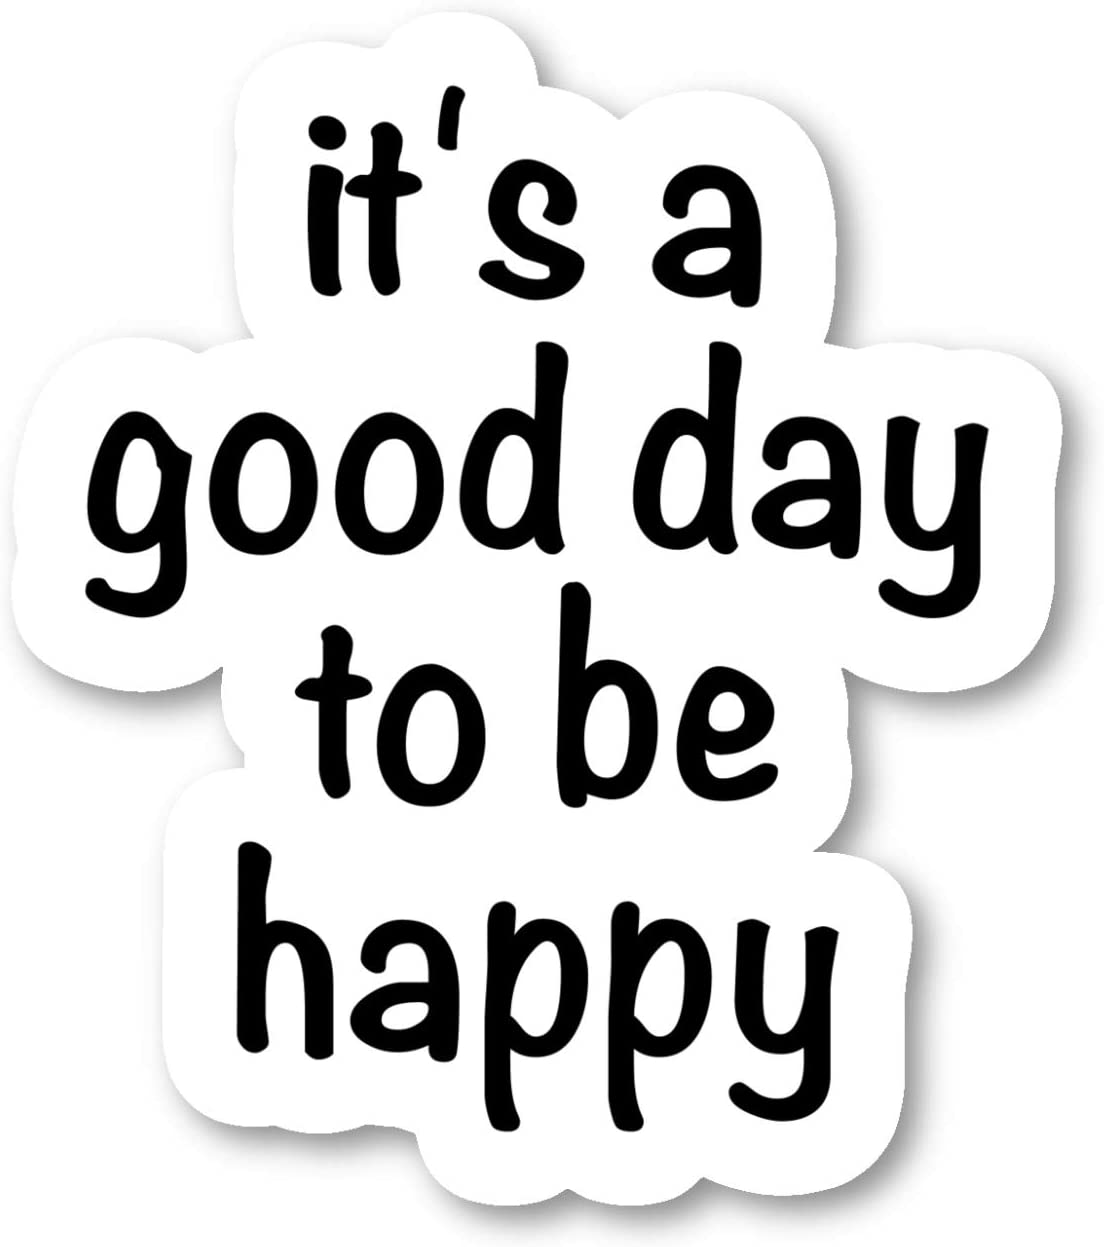 "It's A Good Day to Be Happy Sticker Inspirational Happy Quotes Stickers - 2 Pack - Laptop Stickers - 2.5"" Vinyl Decal - Laptop, Phone, Tablet Vinyl Decal Sticker (2 Pack) S9361"